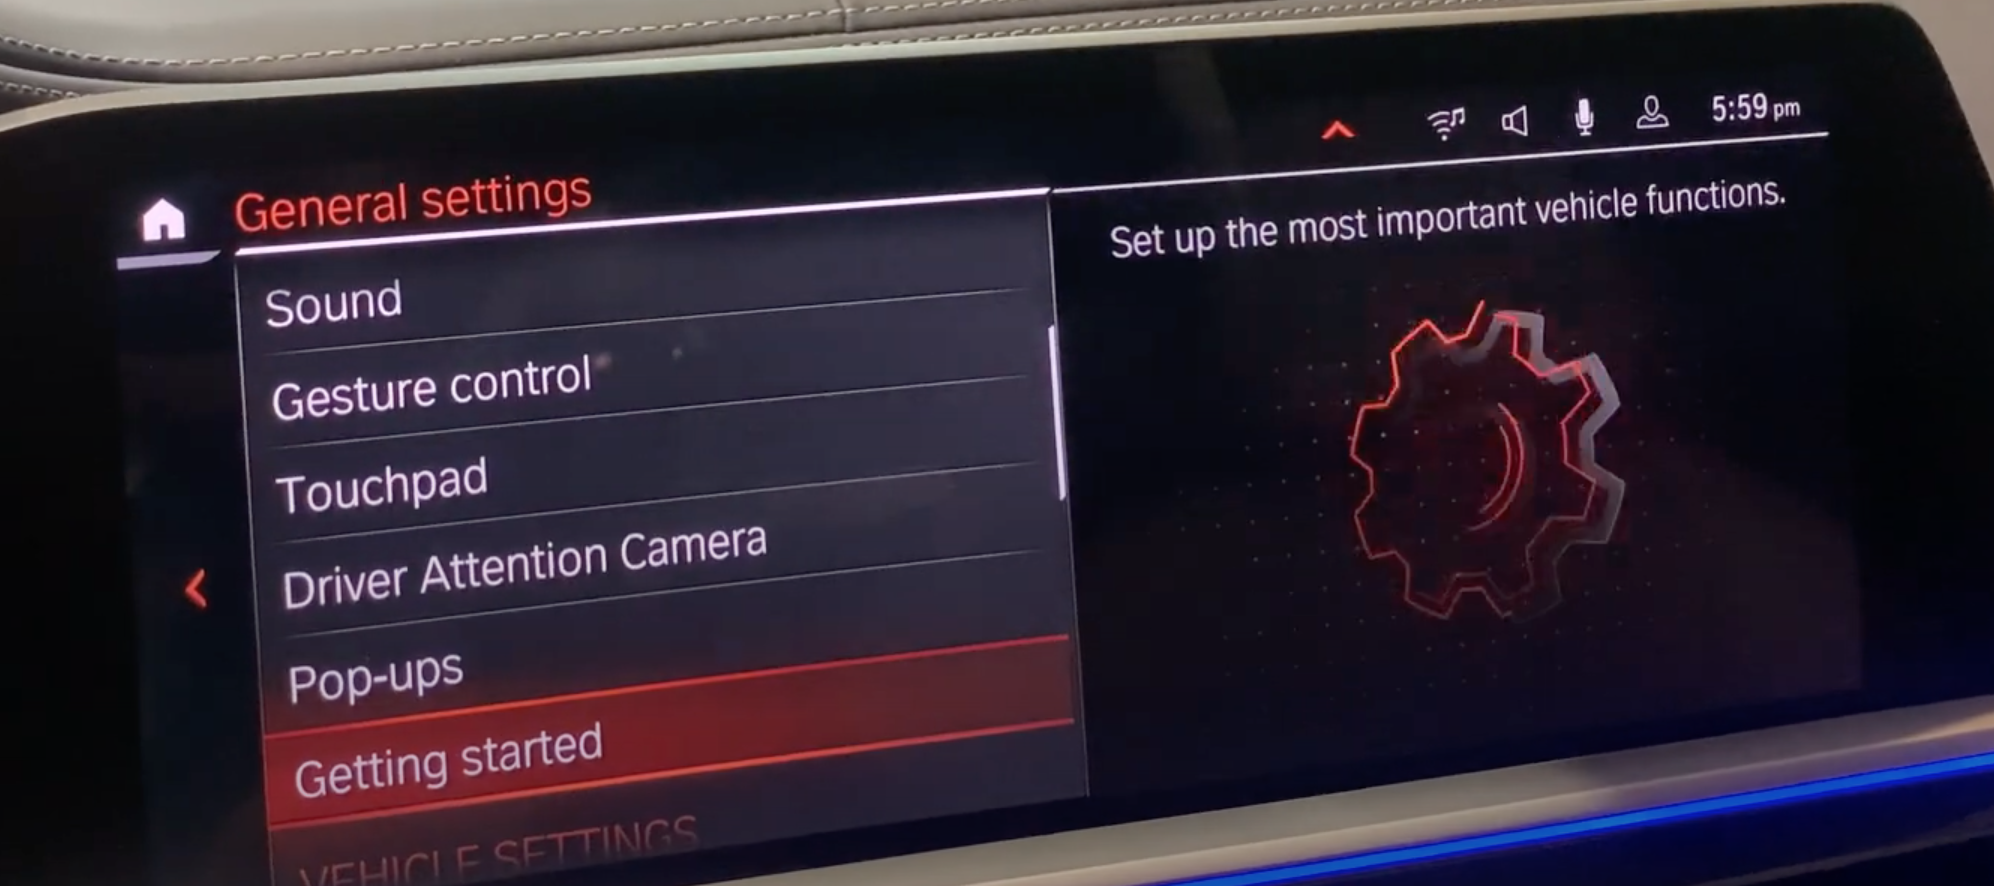 List of general settings for the infotainment settings with an icon of a gear on the side